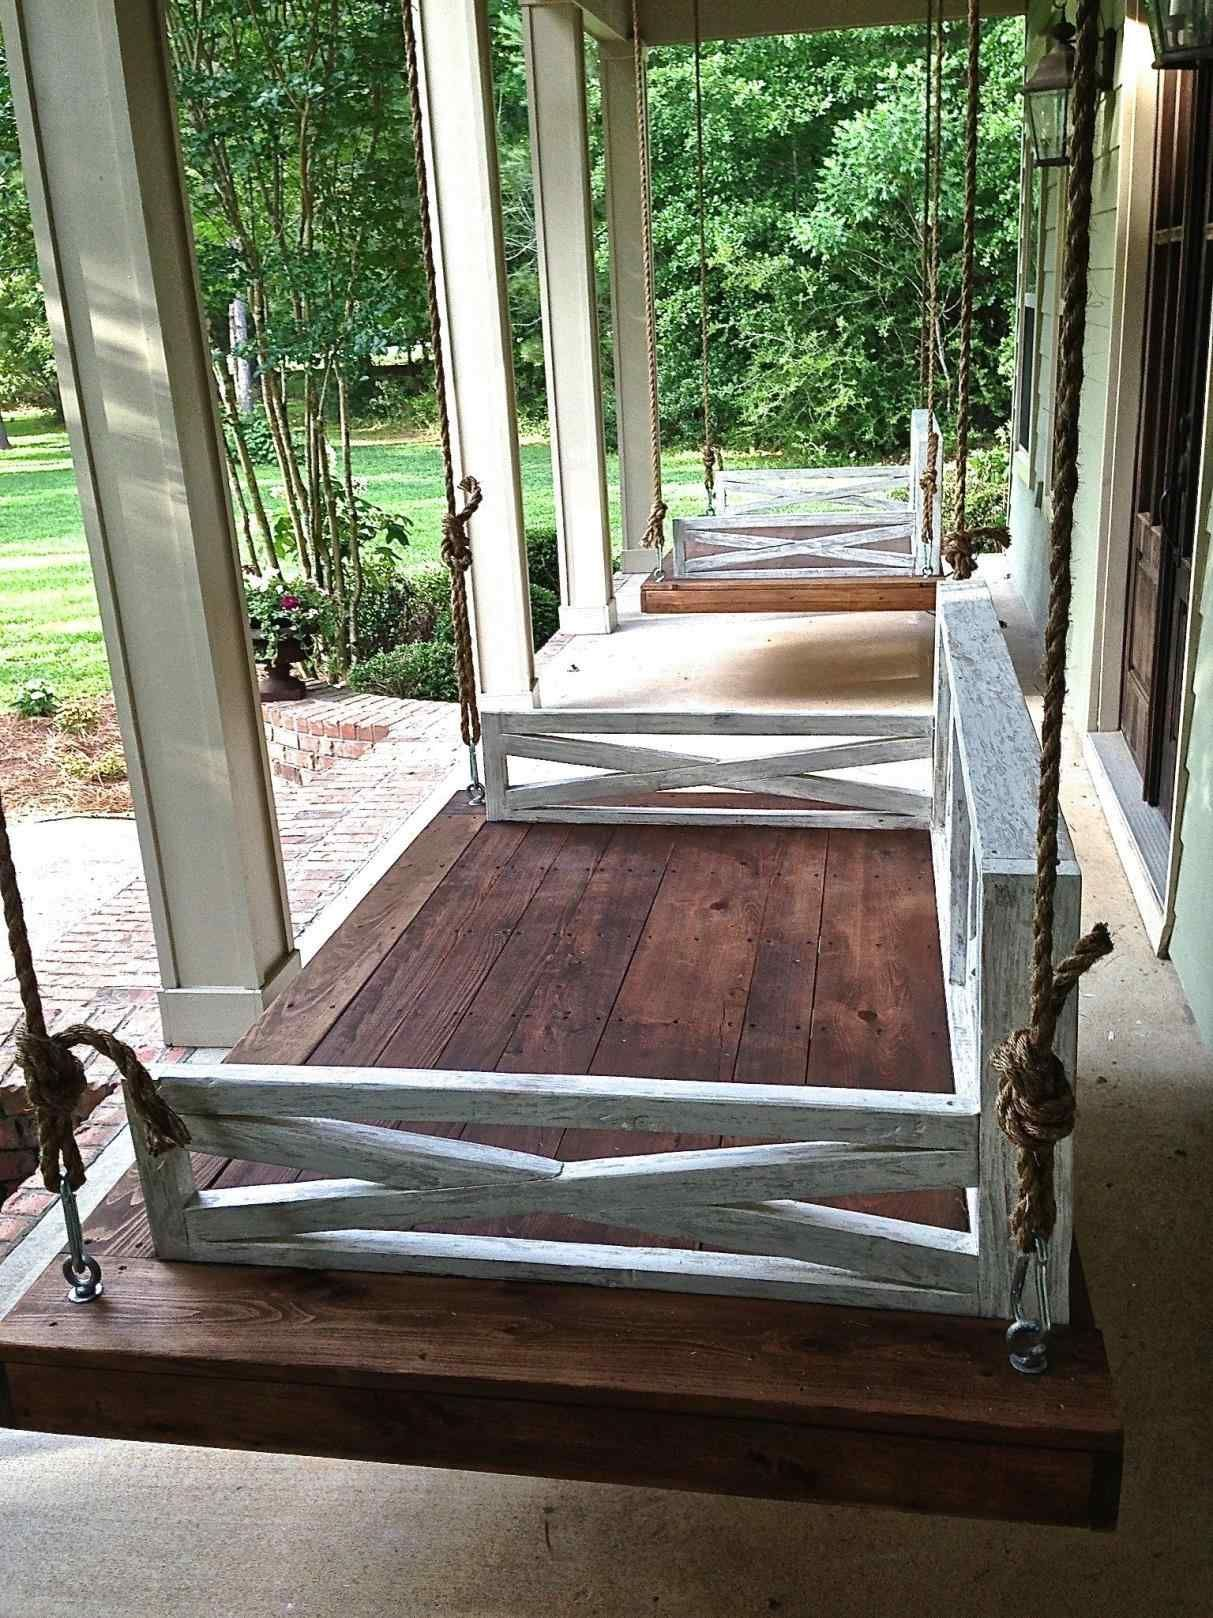 15 Best And Beautiful Hanging Bed For Porch Outdoor Porch Bed Front Porch Furniture Diy Porch Swing Bed